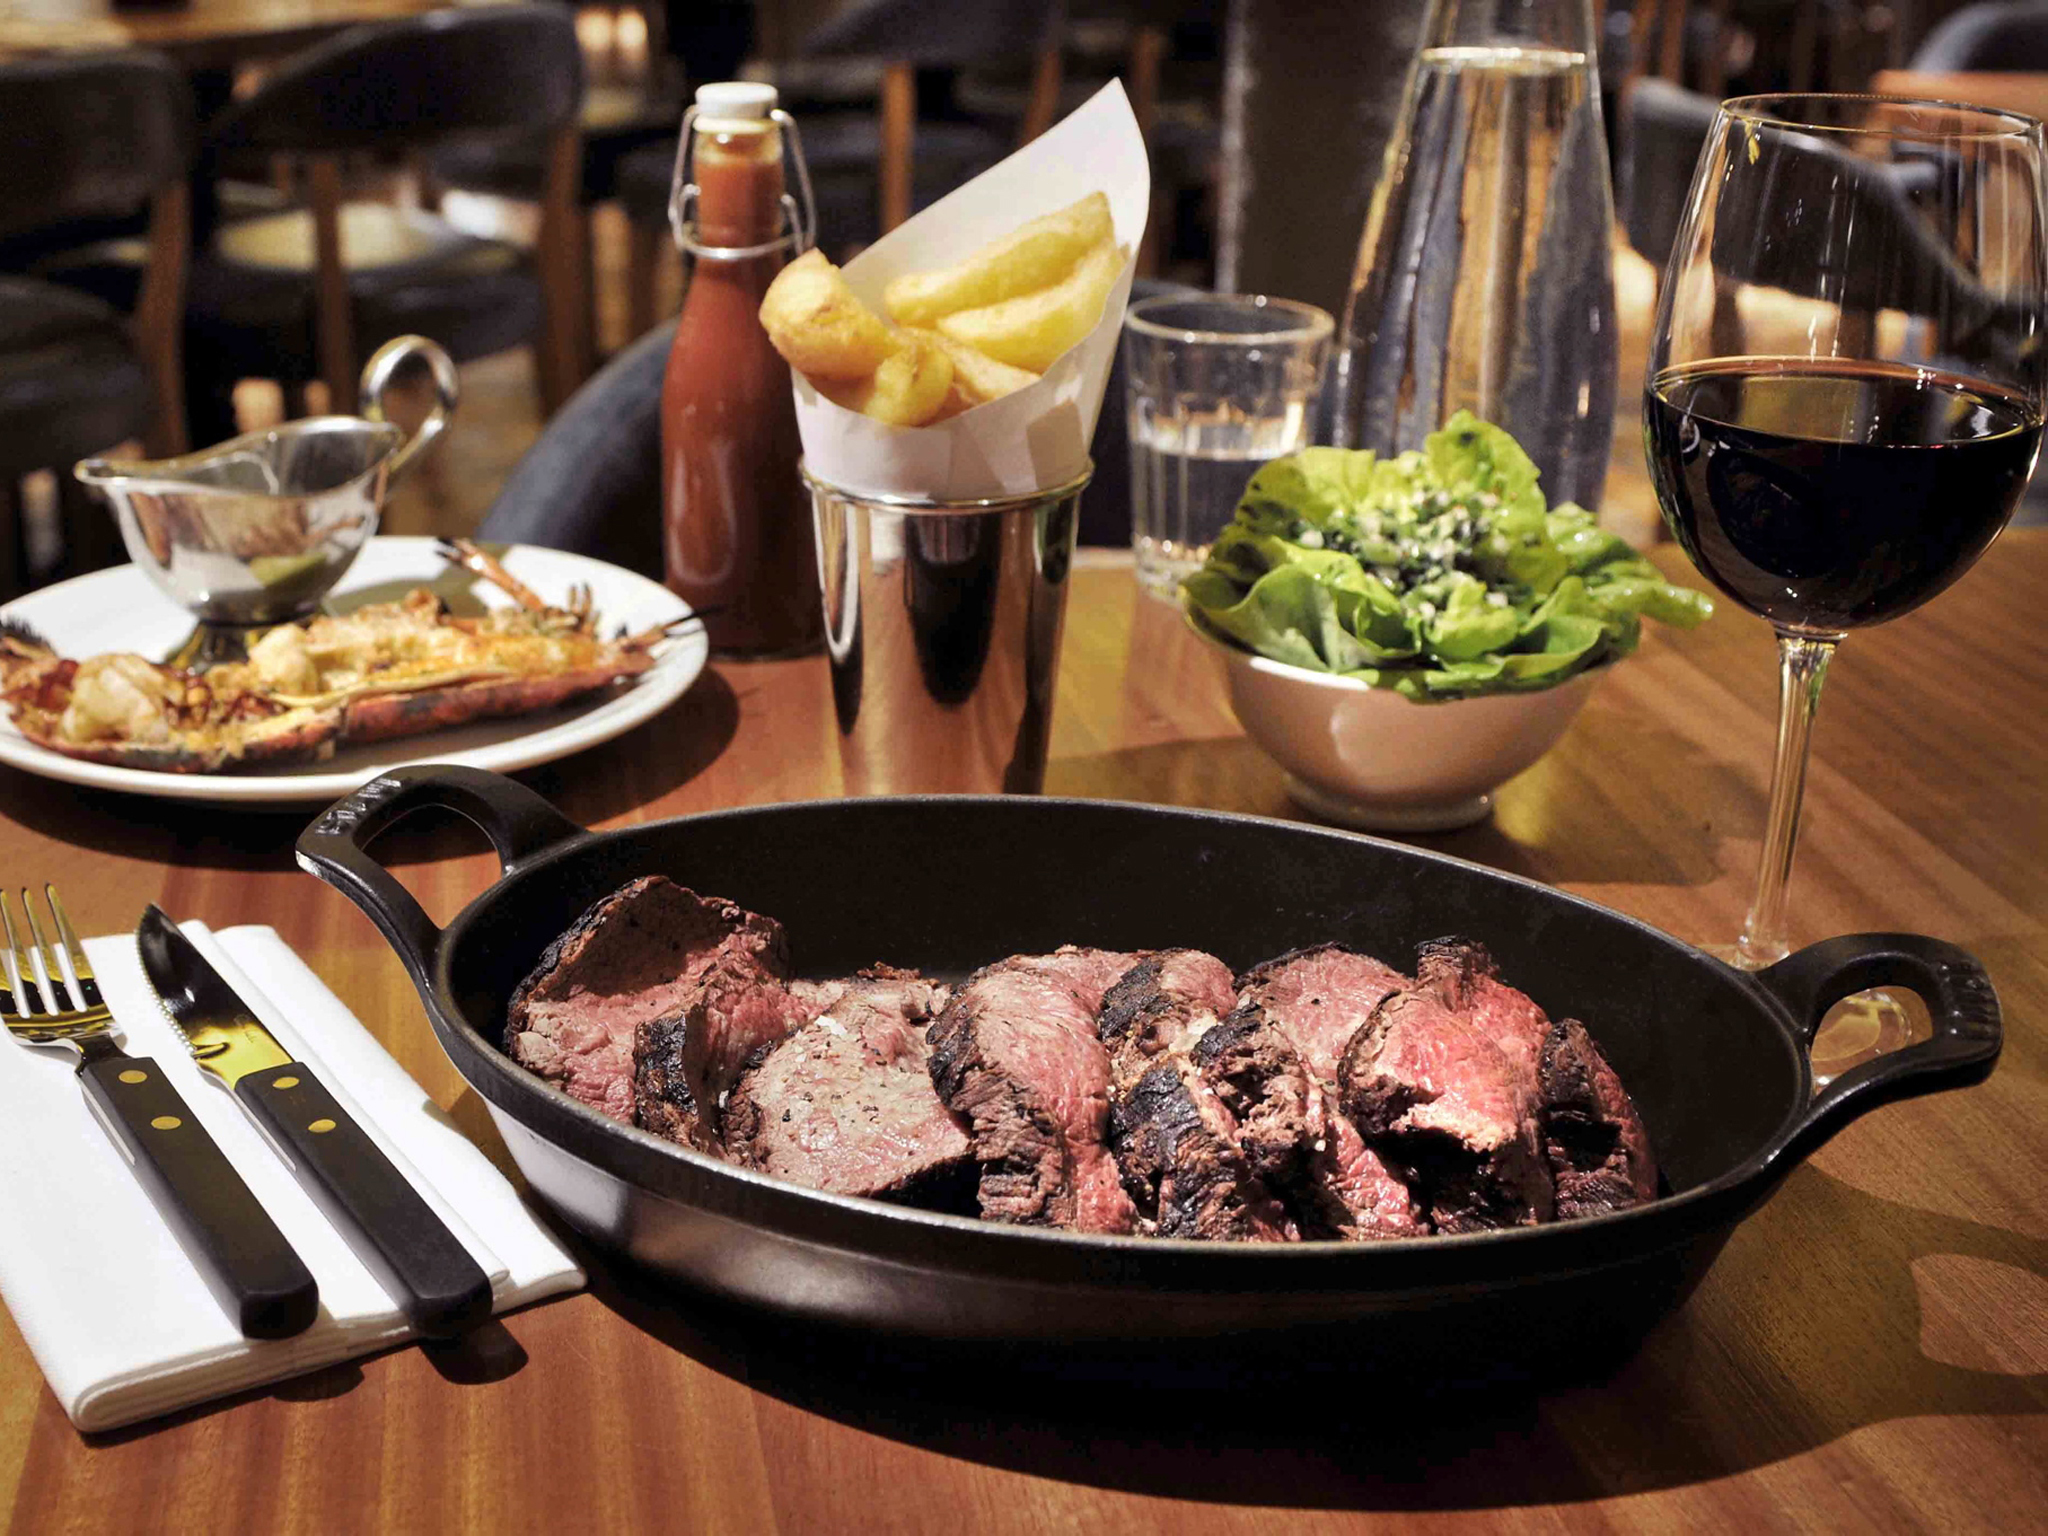 Let Hawksmoor cook you a Sunday roast